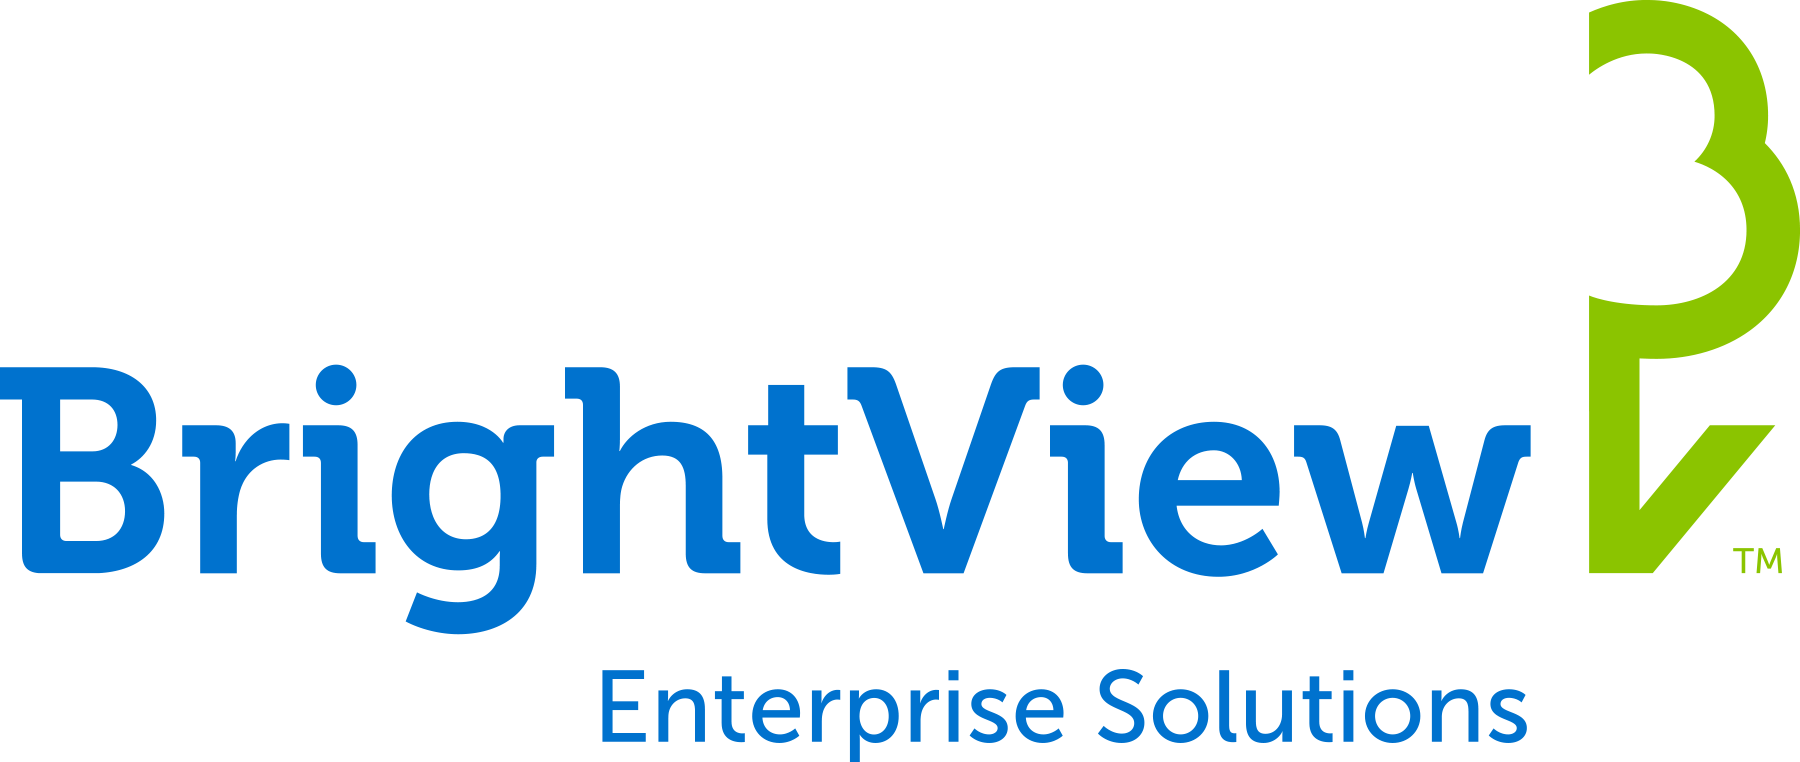 BrightView Enterprise Solutions Logo